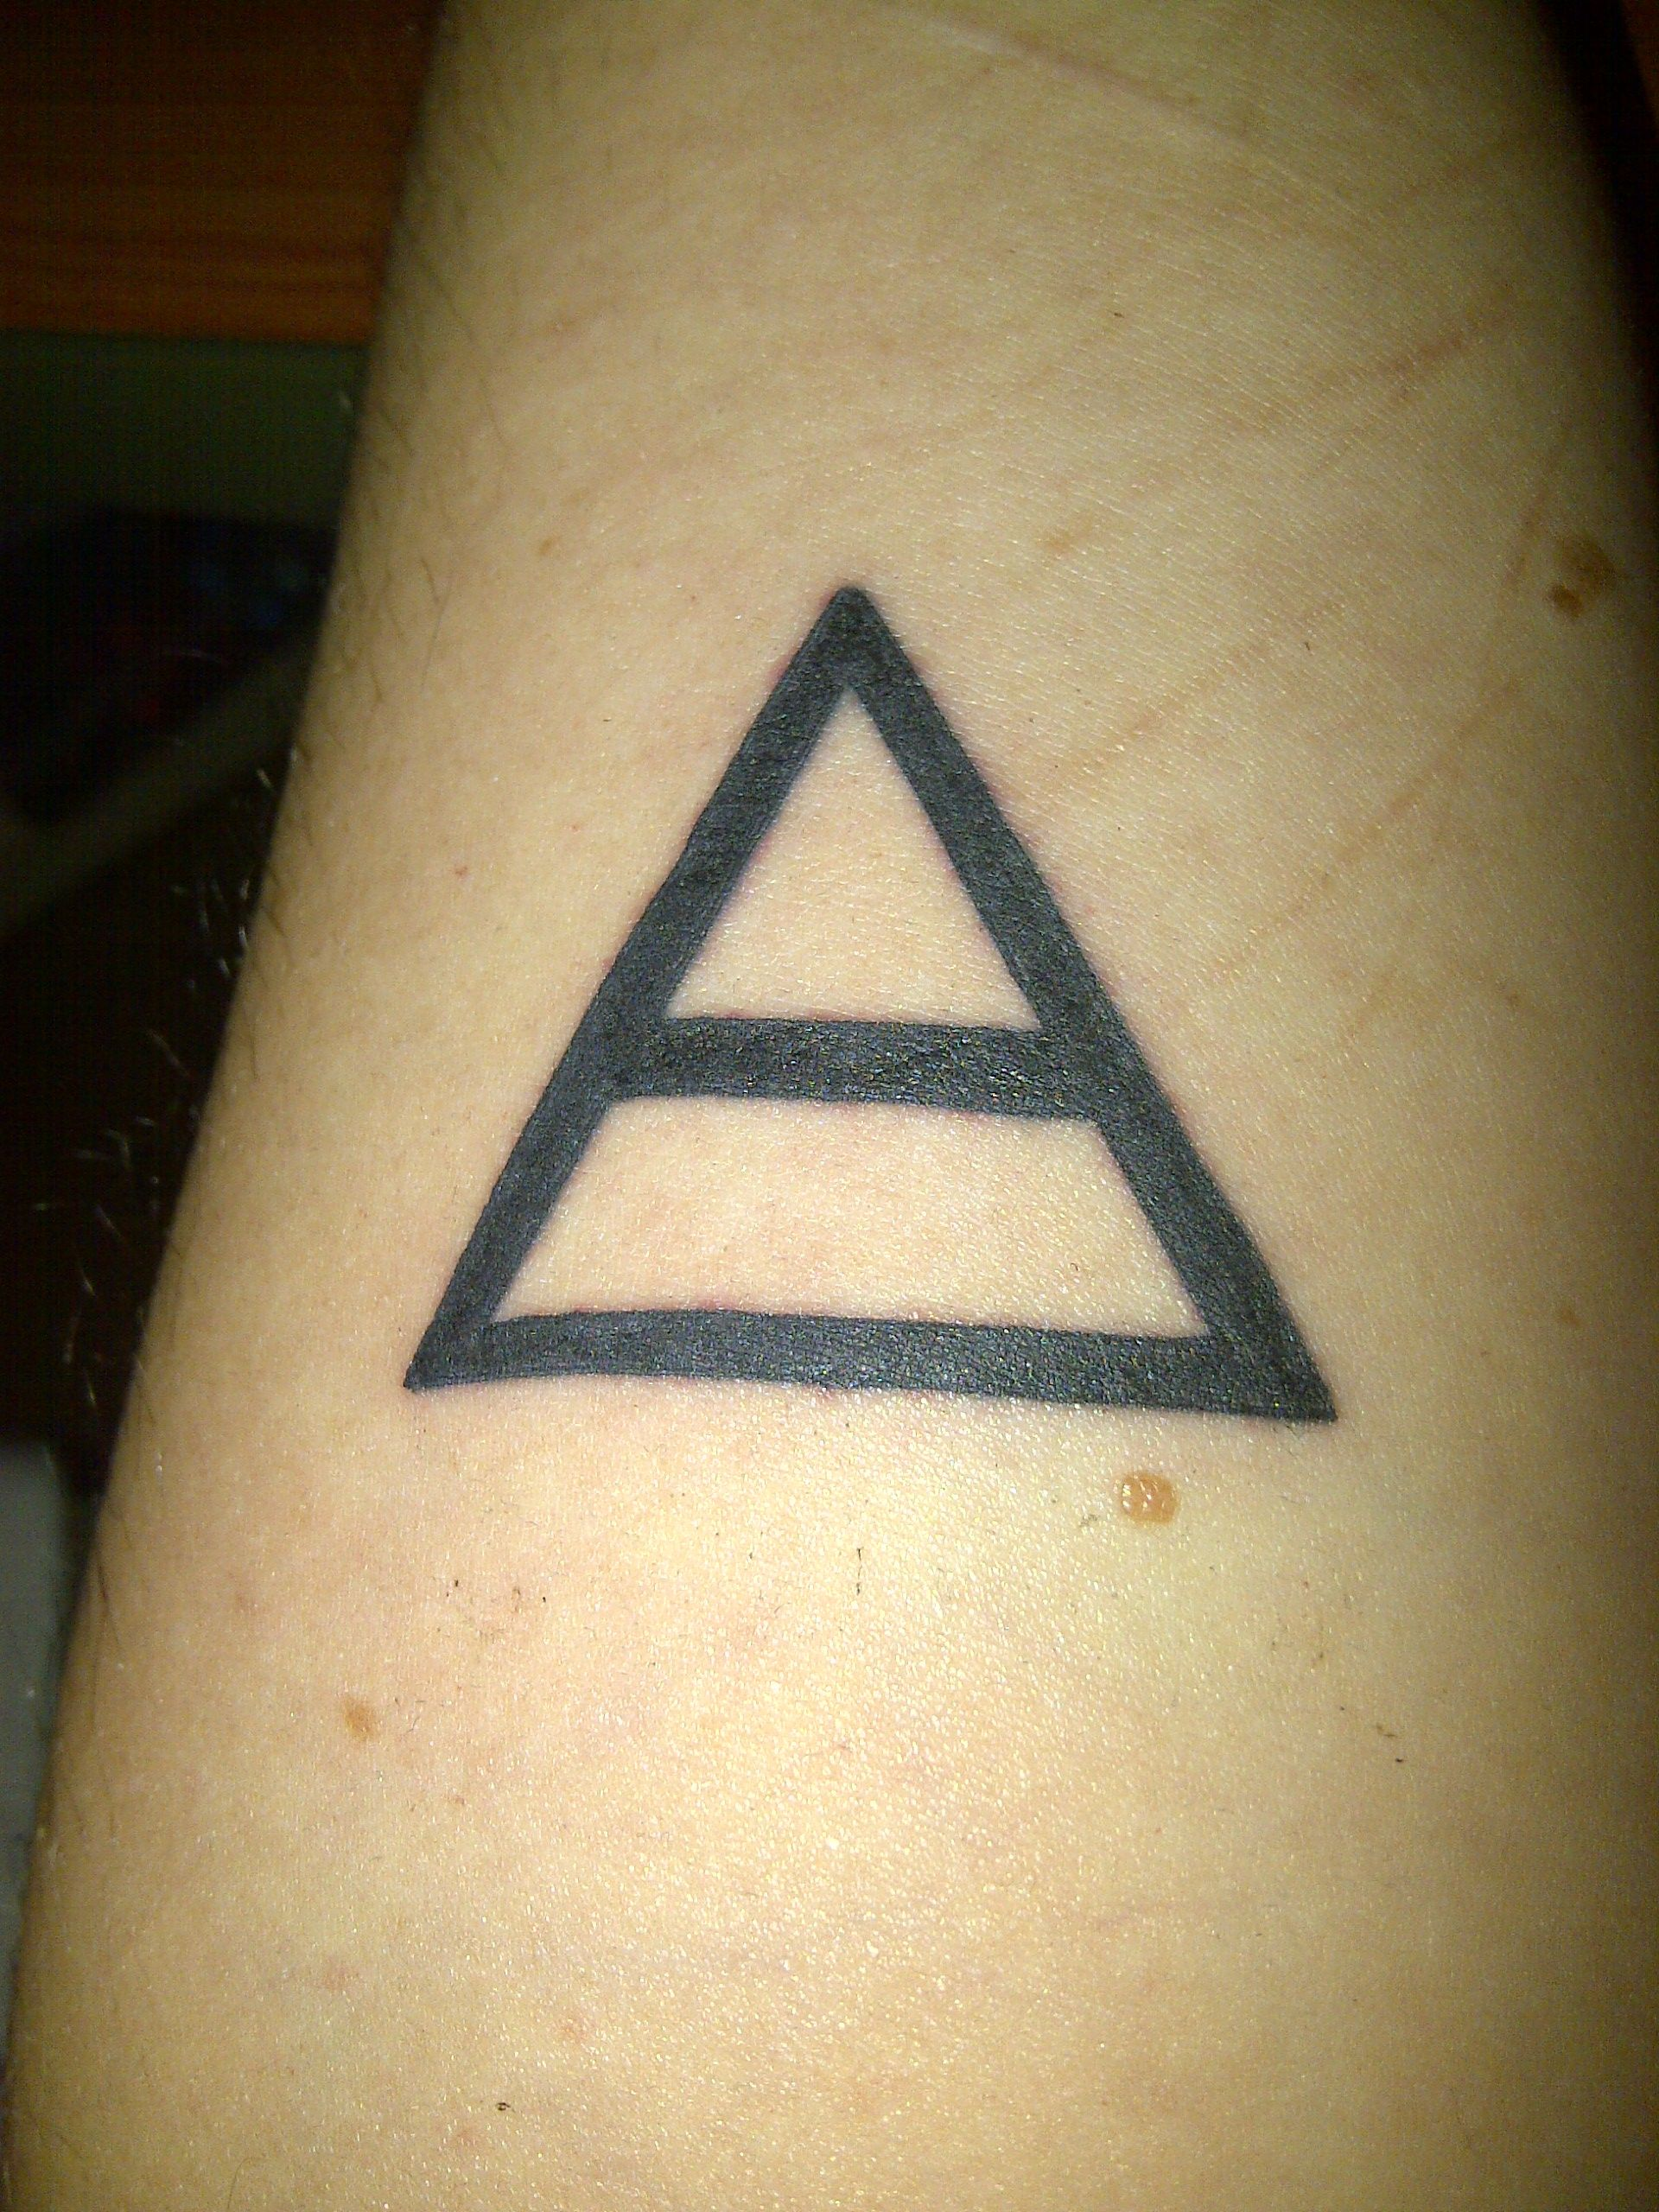 30 Seconds To Mars Triad Tattoo Body Altering Ideas And Designs